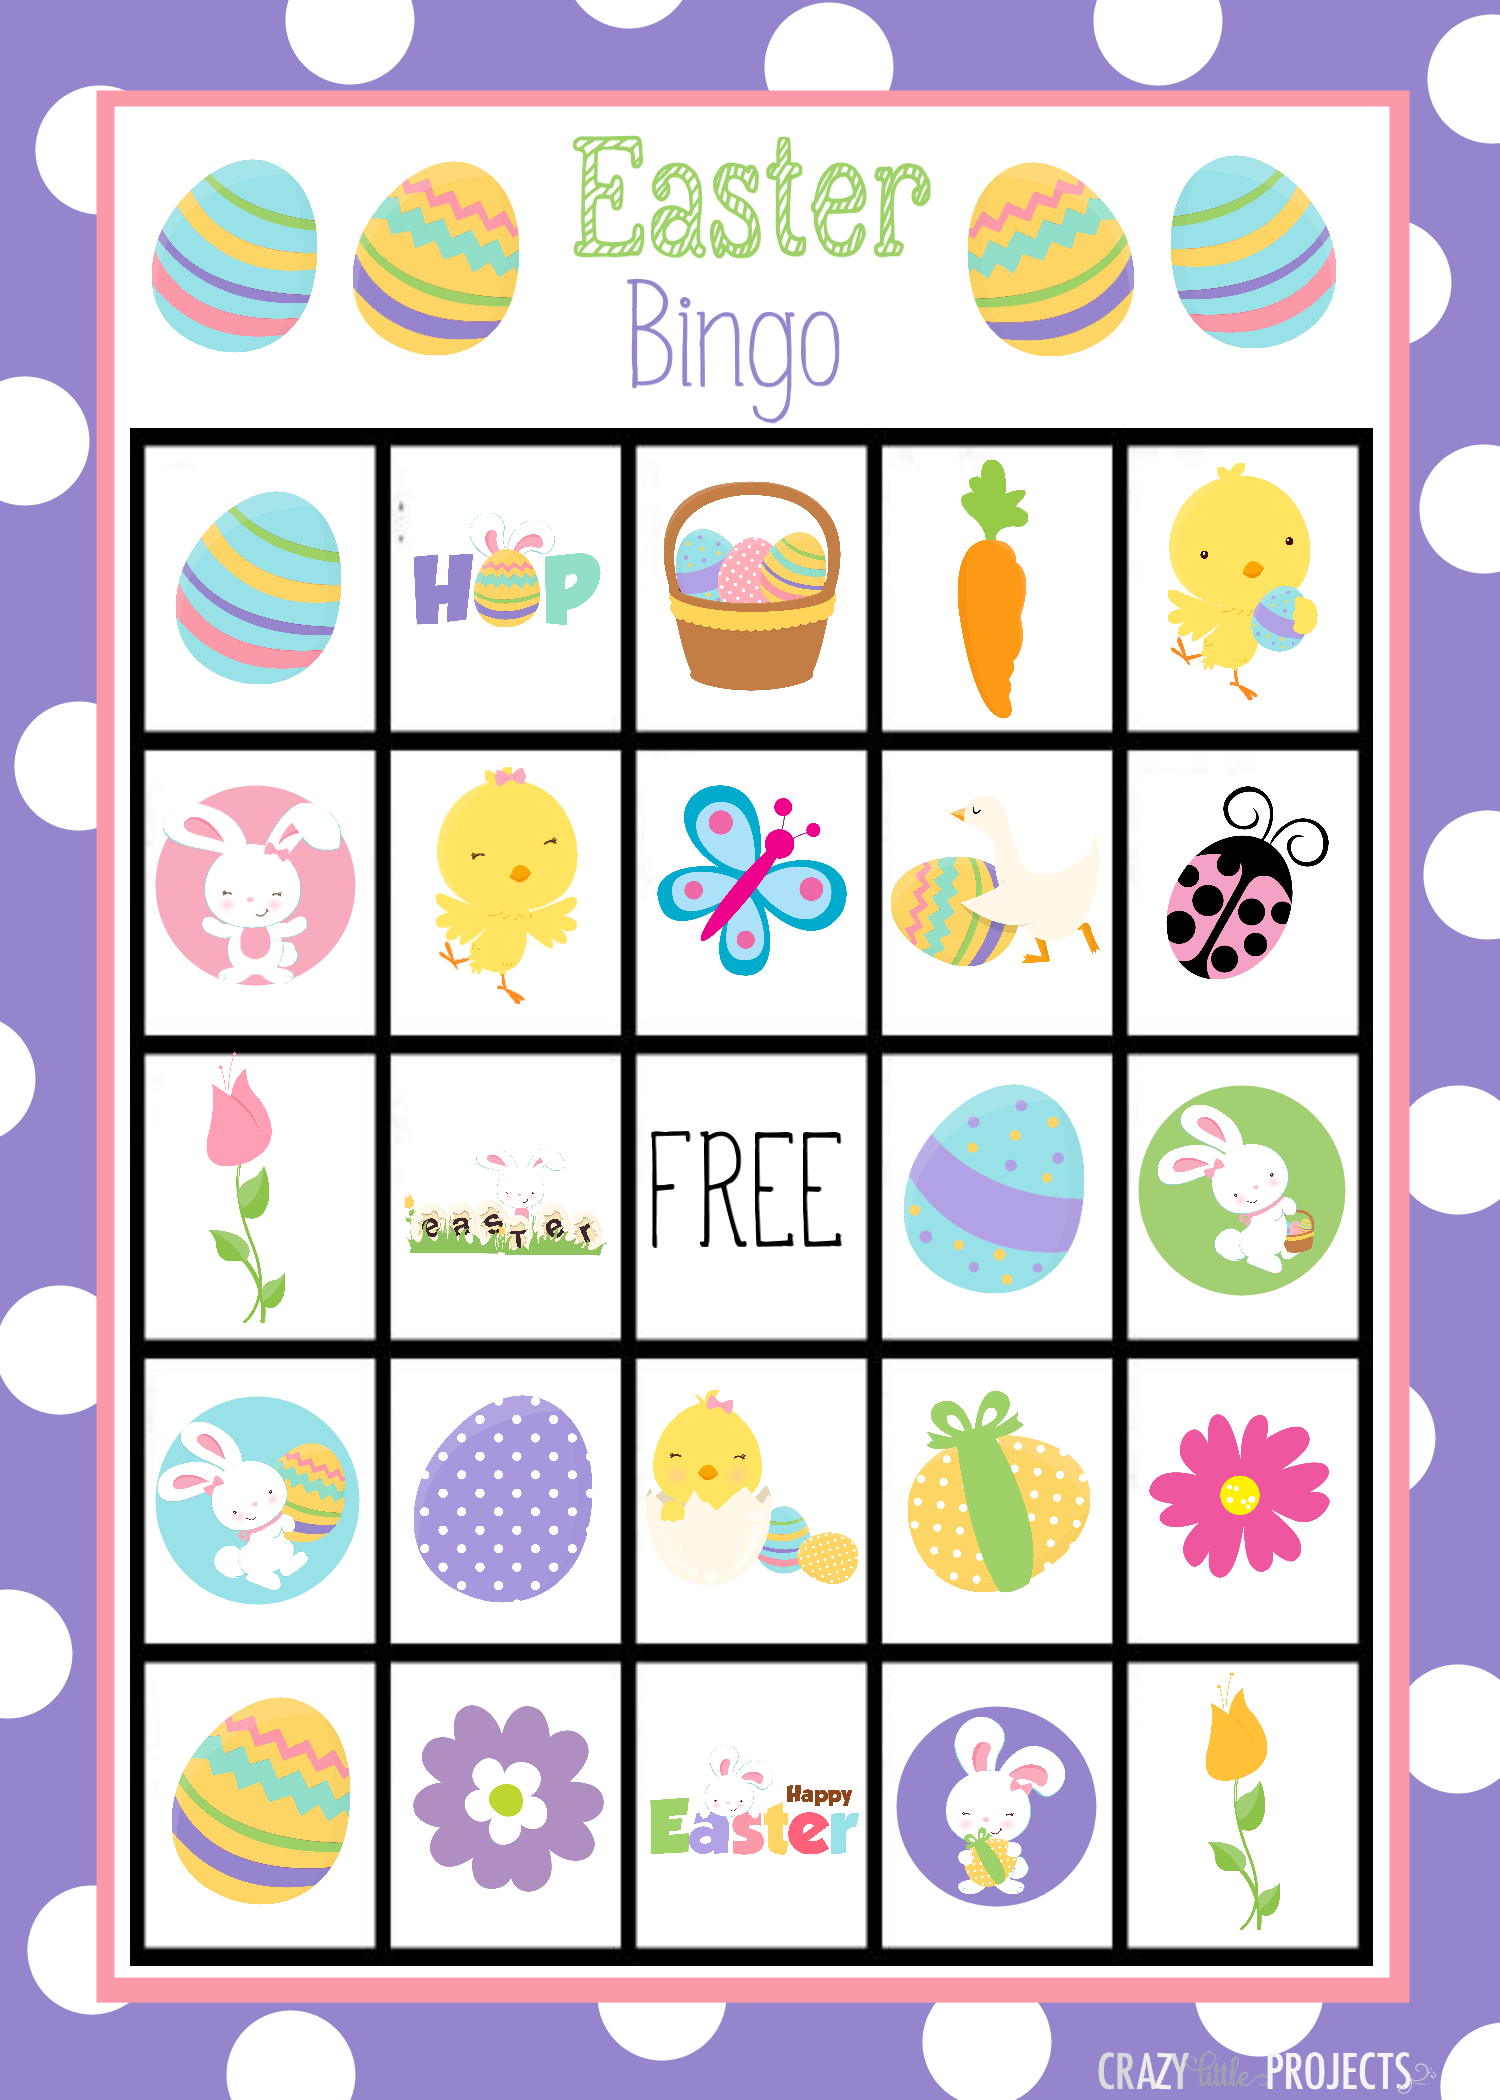 8 Images of Spring Bingo Printable Games